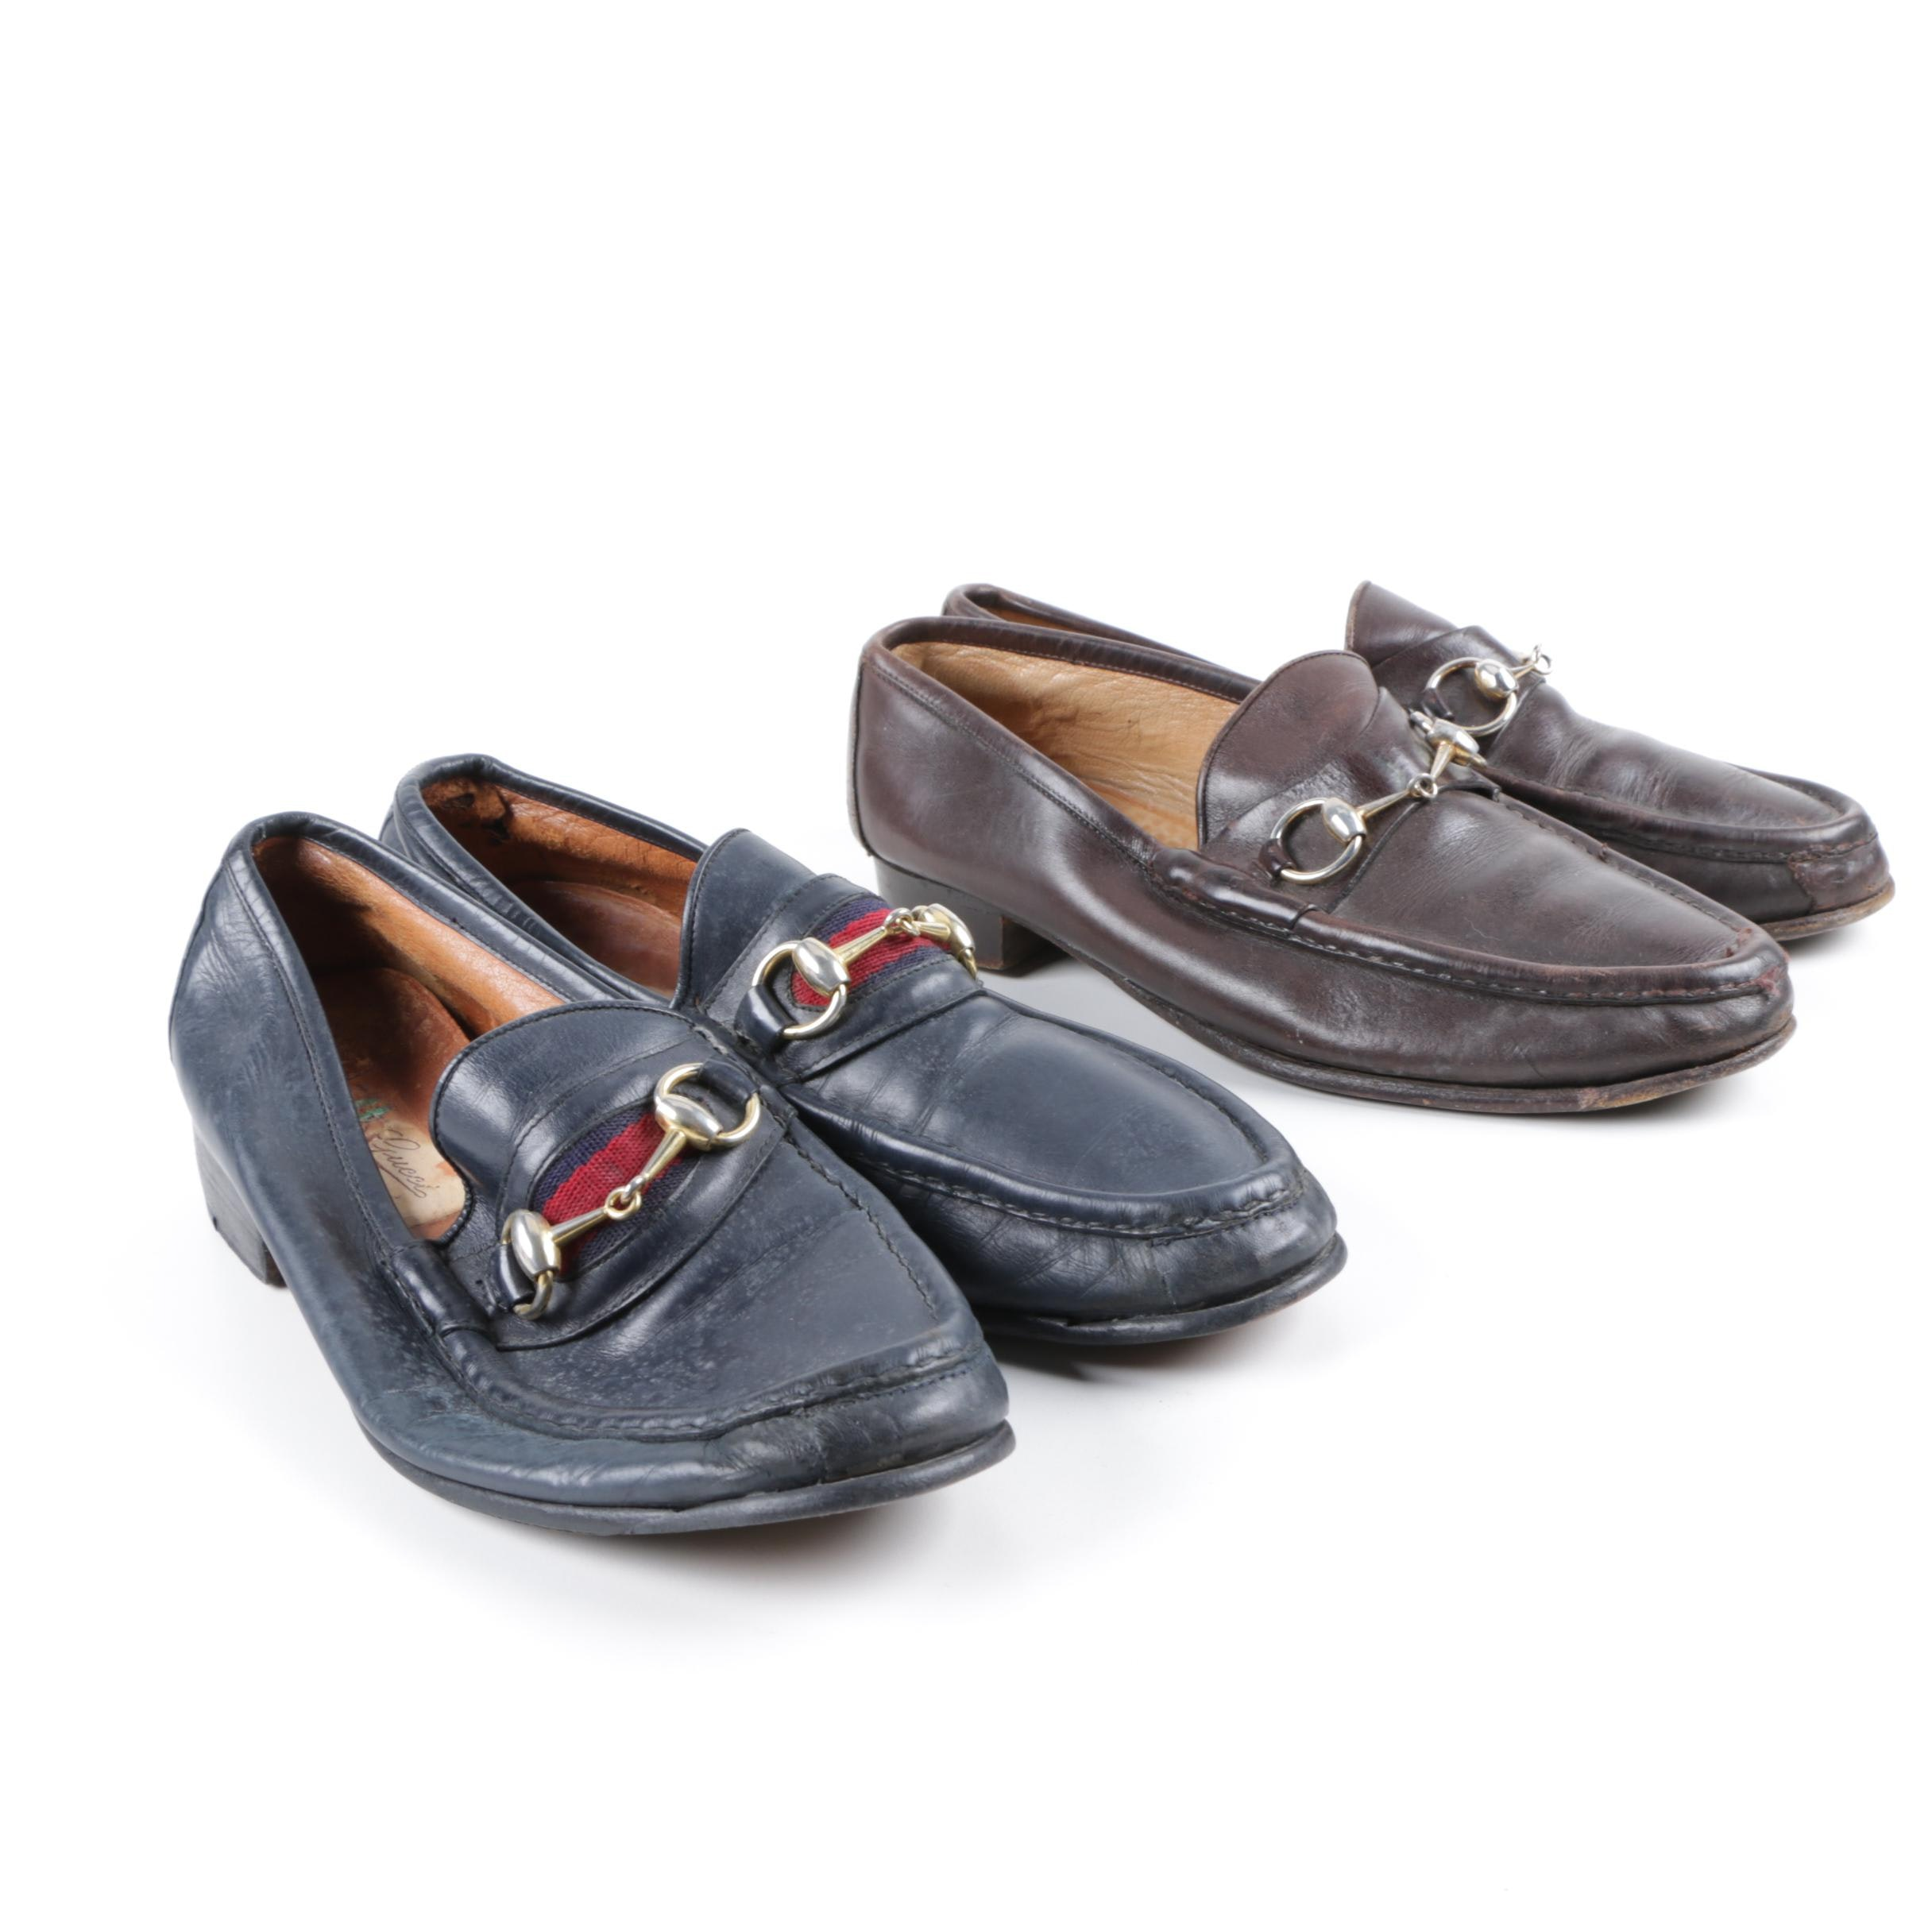 Men's Gucci Brown and Navy Leather Loafers